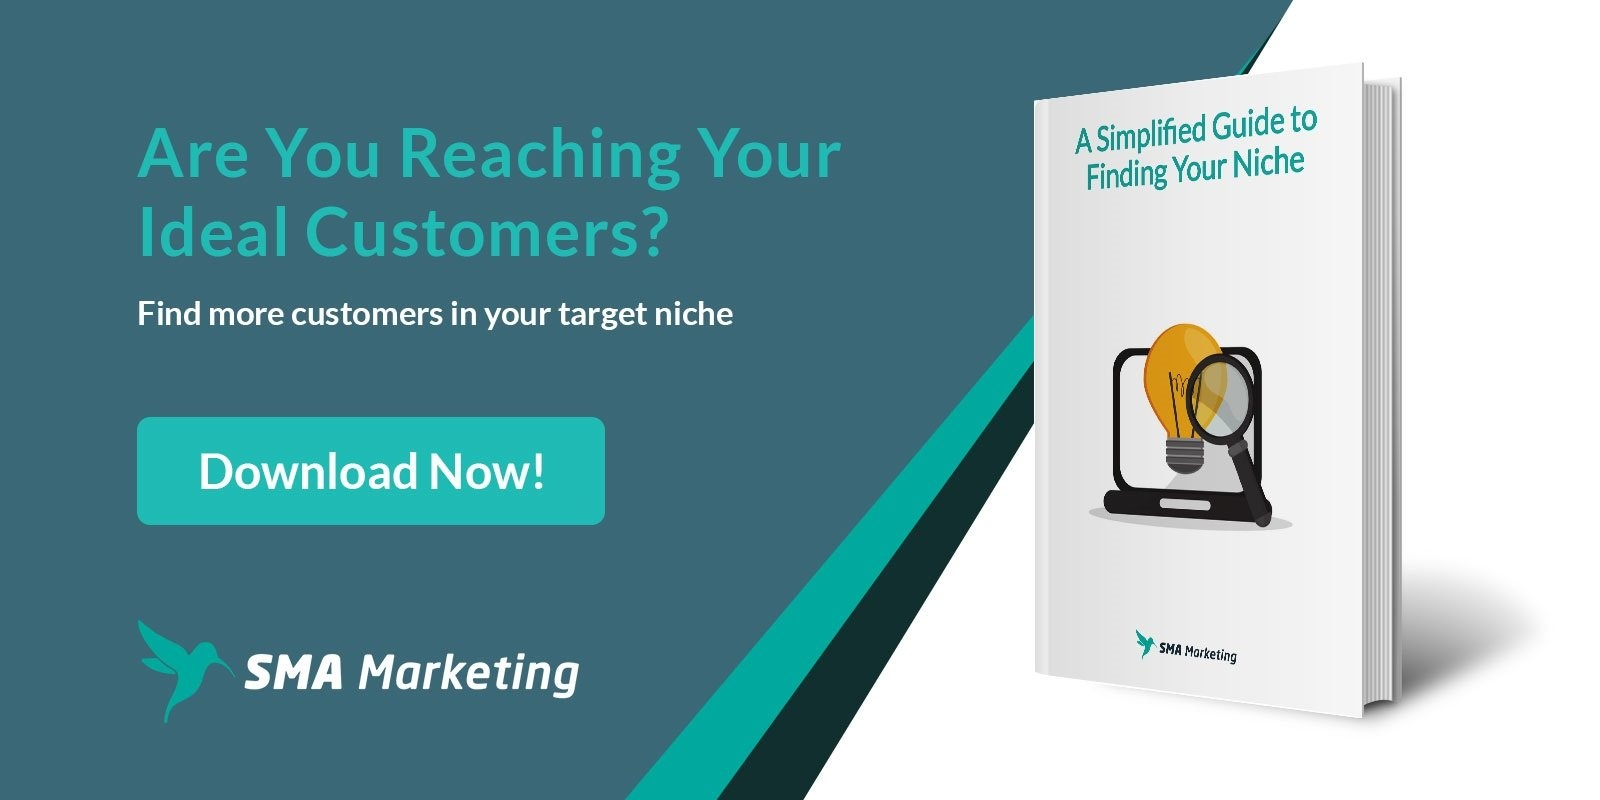 A Simplified Guide to Finding Your Niche